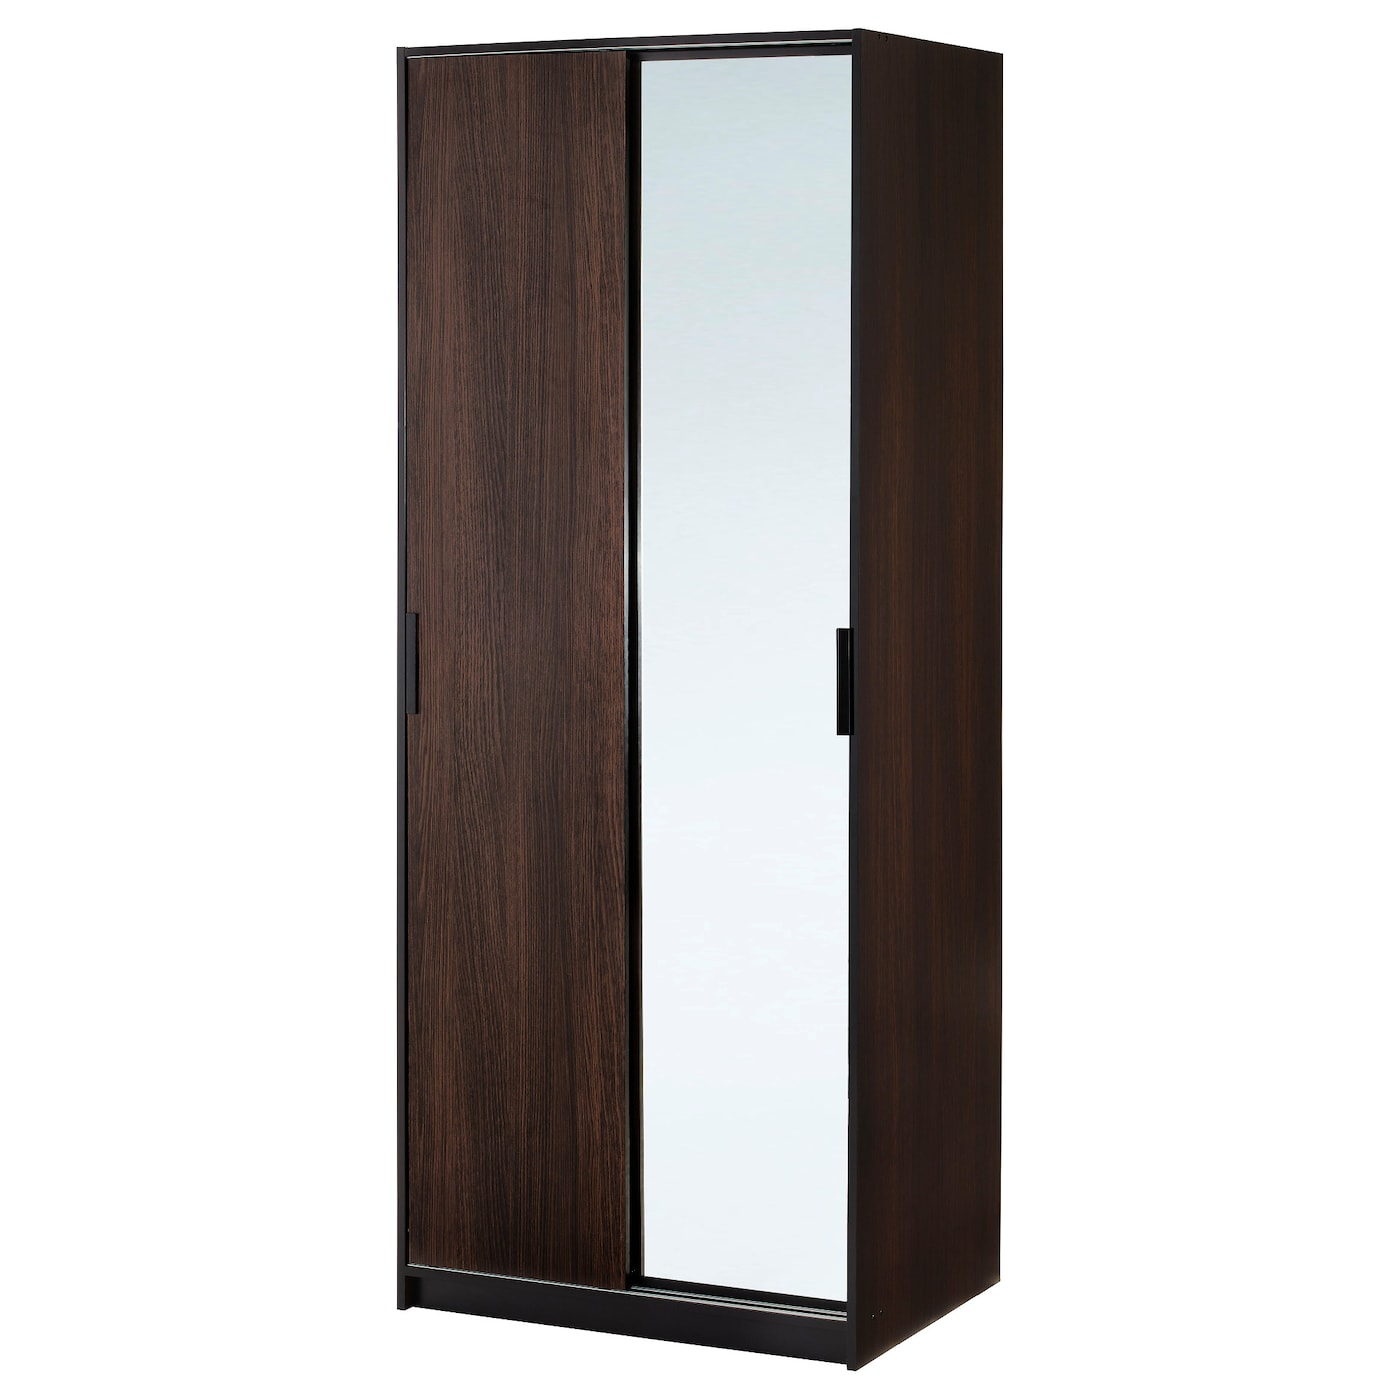 TRYSIL Wardrobe w sliding doors 4 drawers White 118x61x202